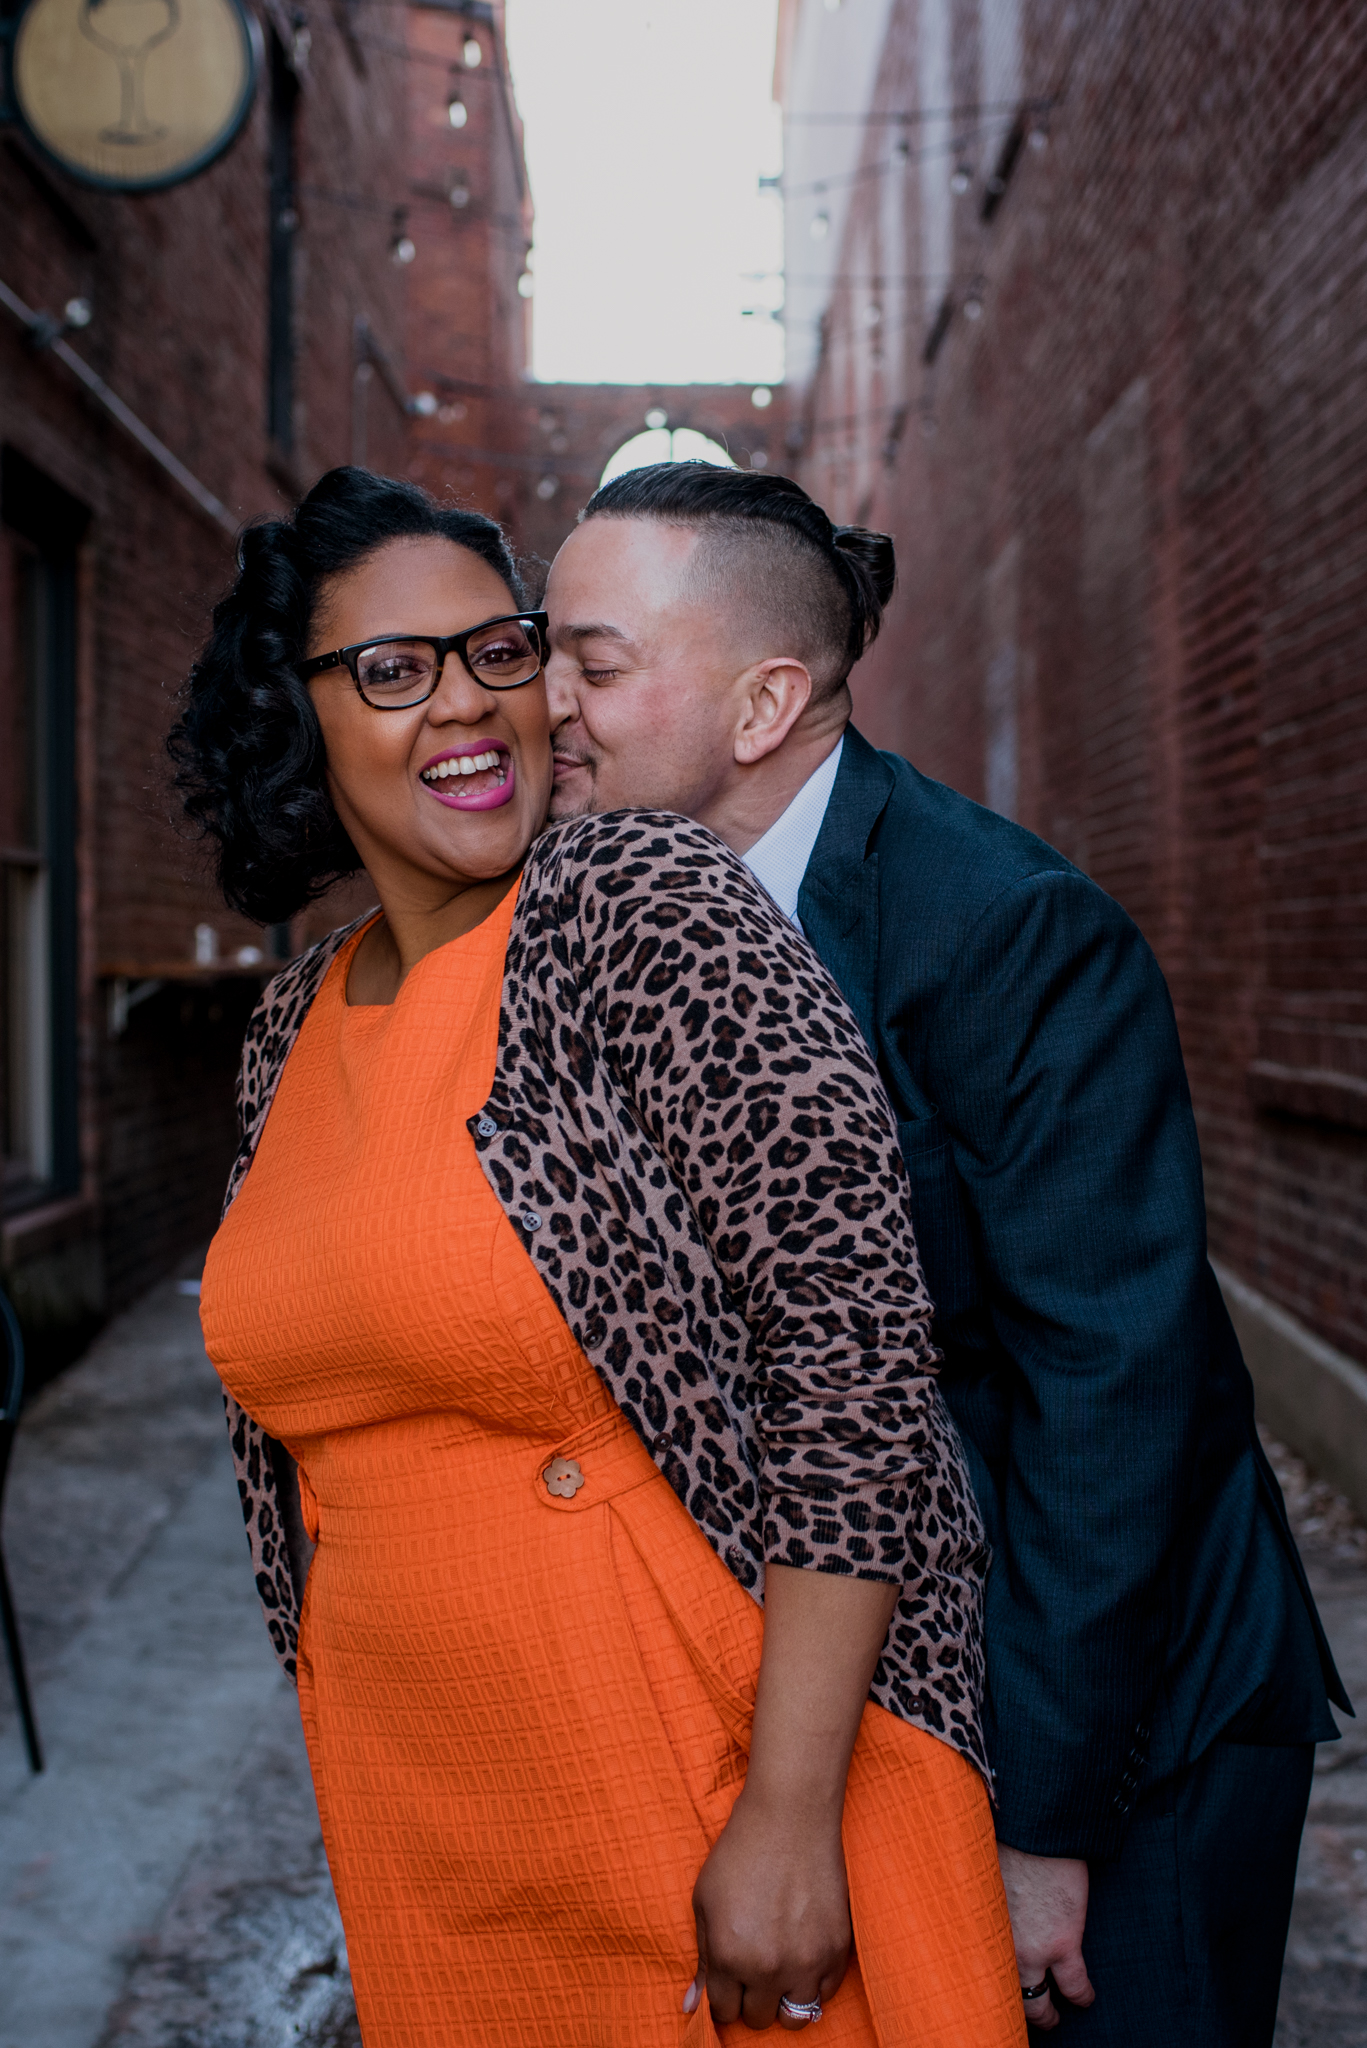 The husband kisses his wife's cheek in an alley way outside of The Durham Hotel in Durham, North Carolina, image by Rose Trail Images.